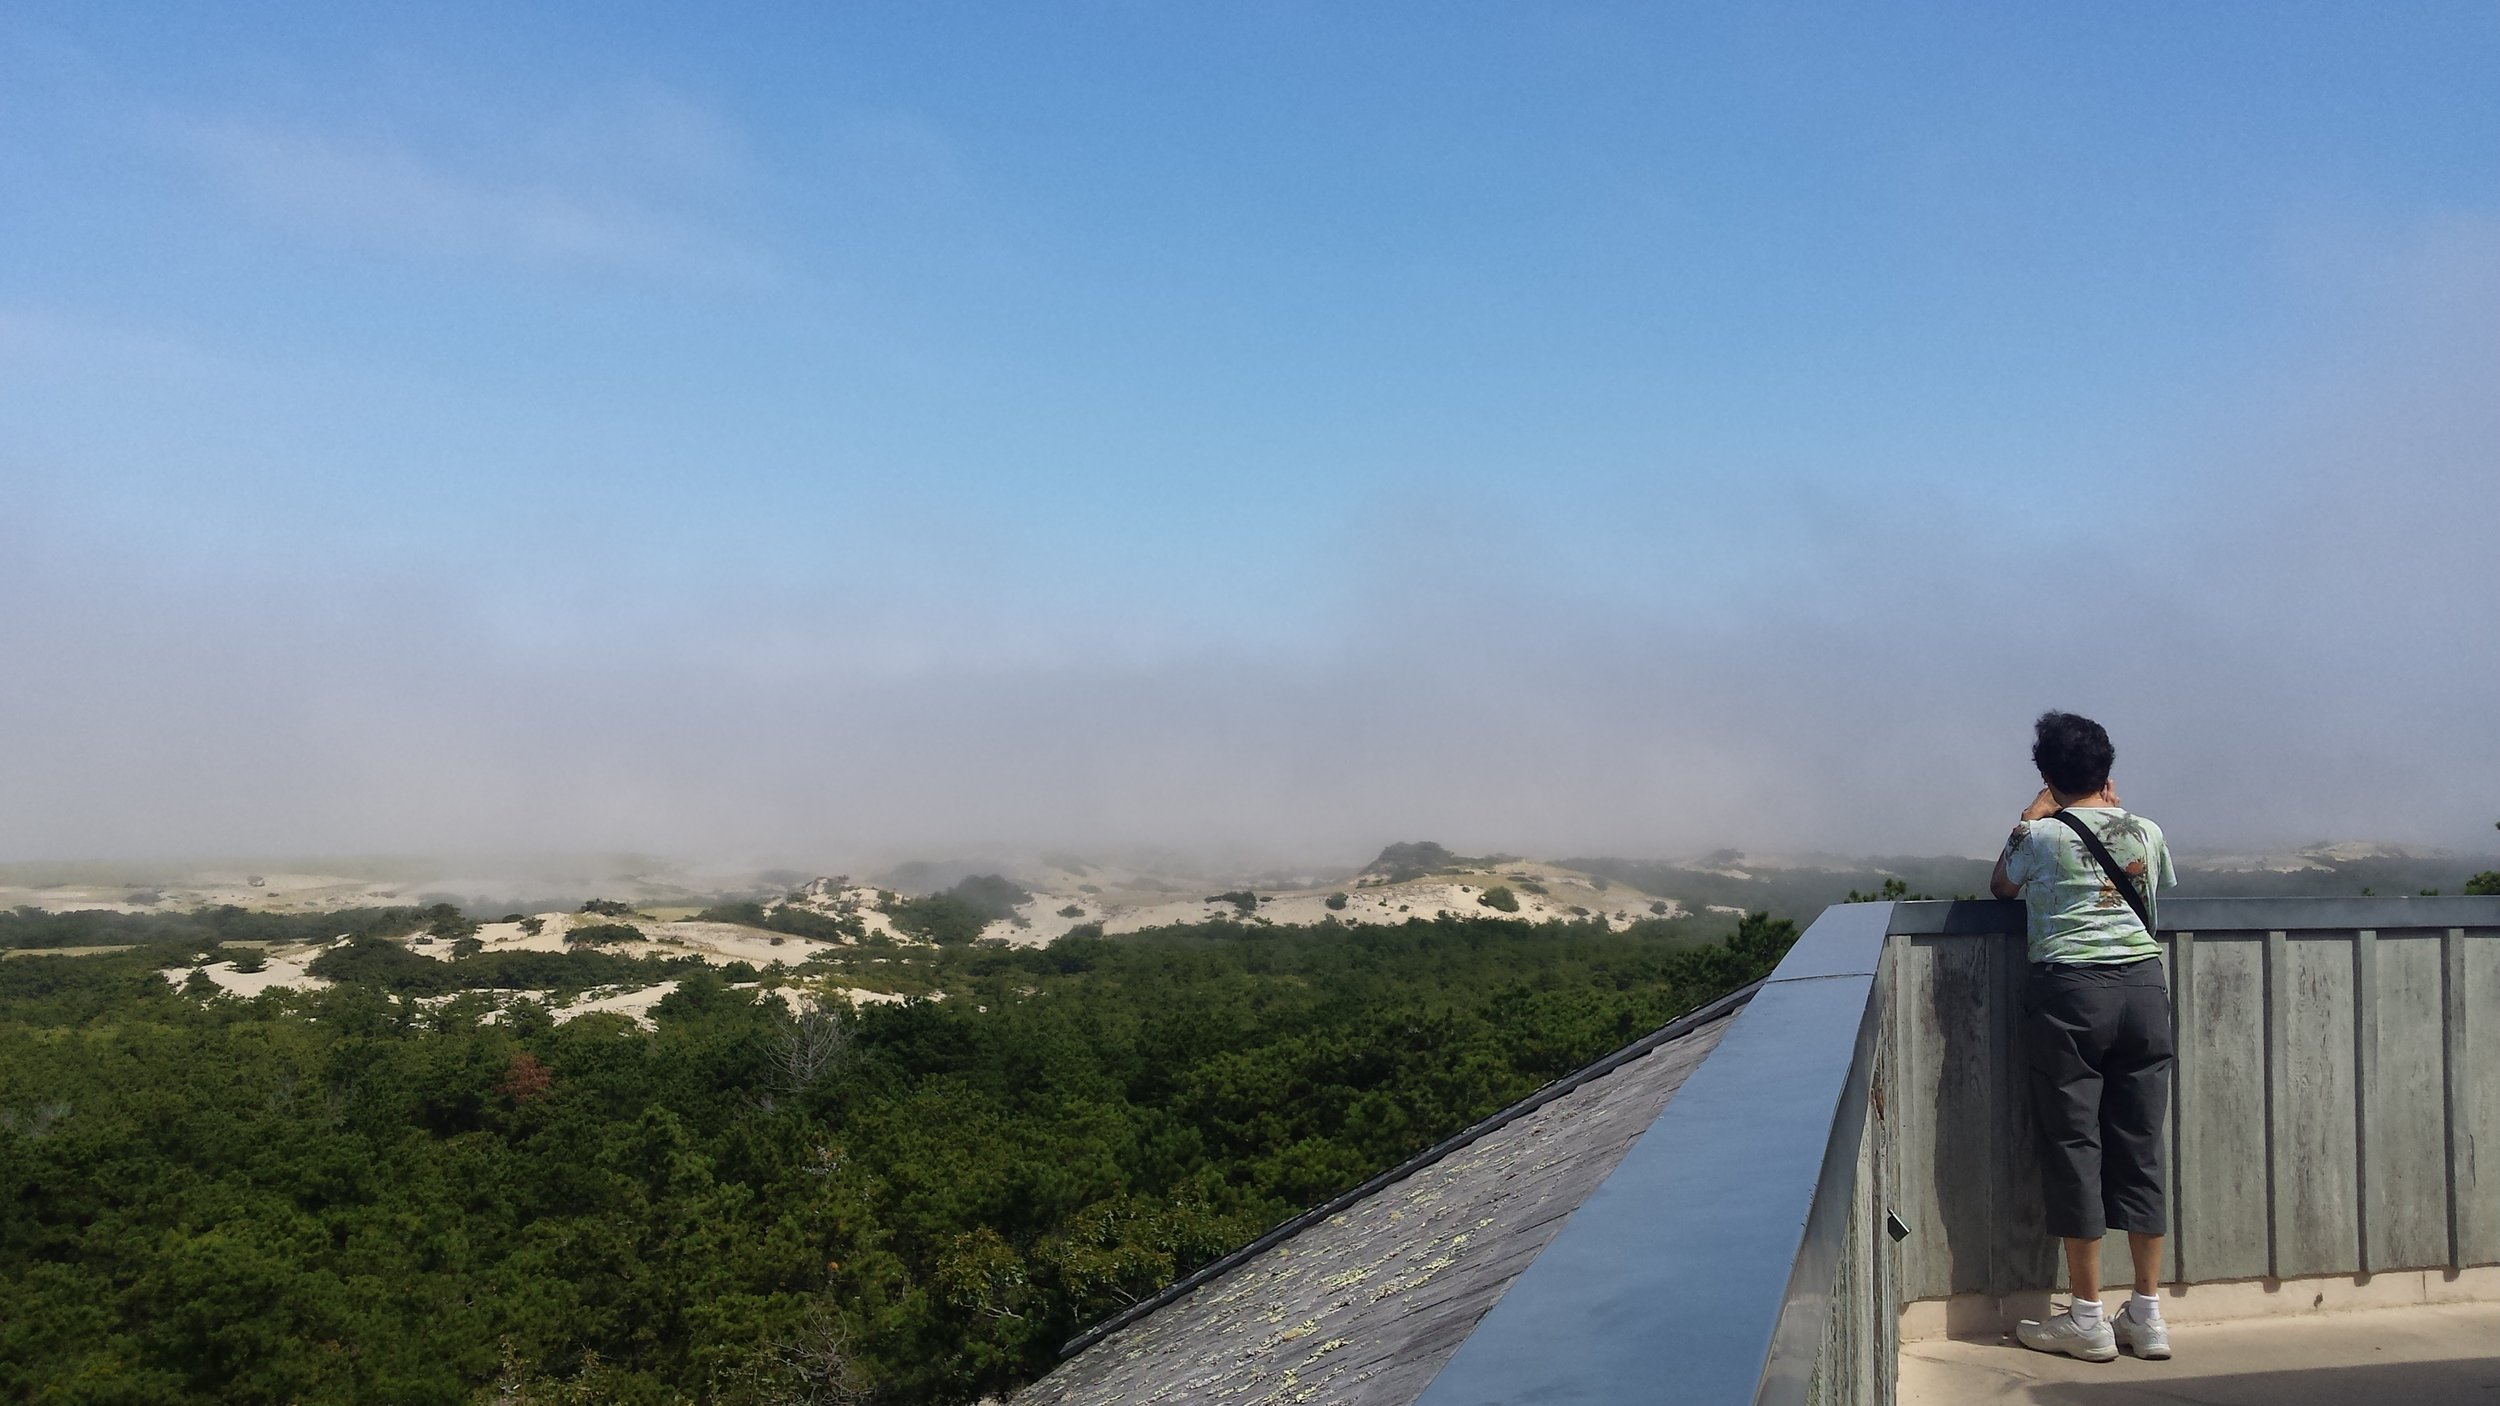 Fog Moving Over the Dunes